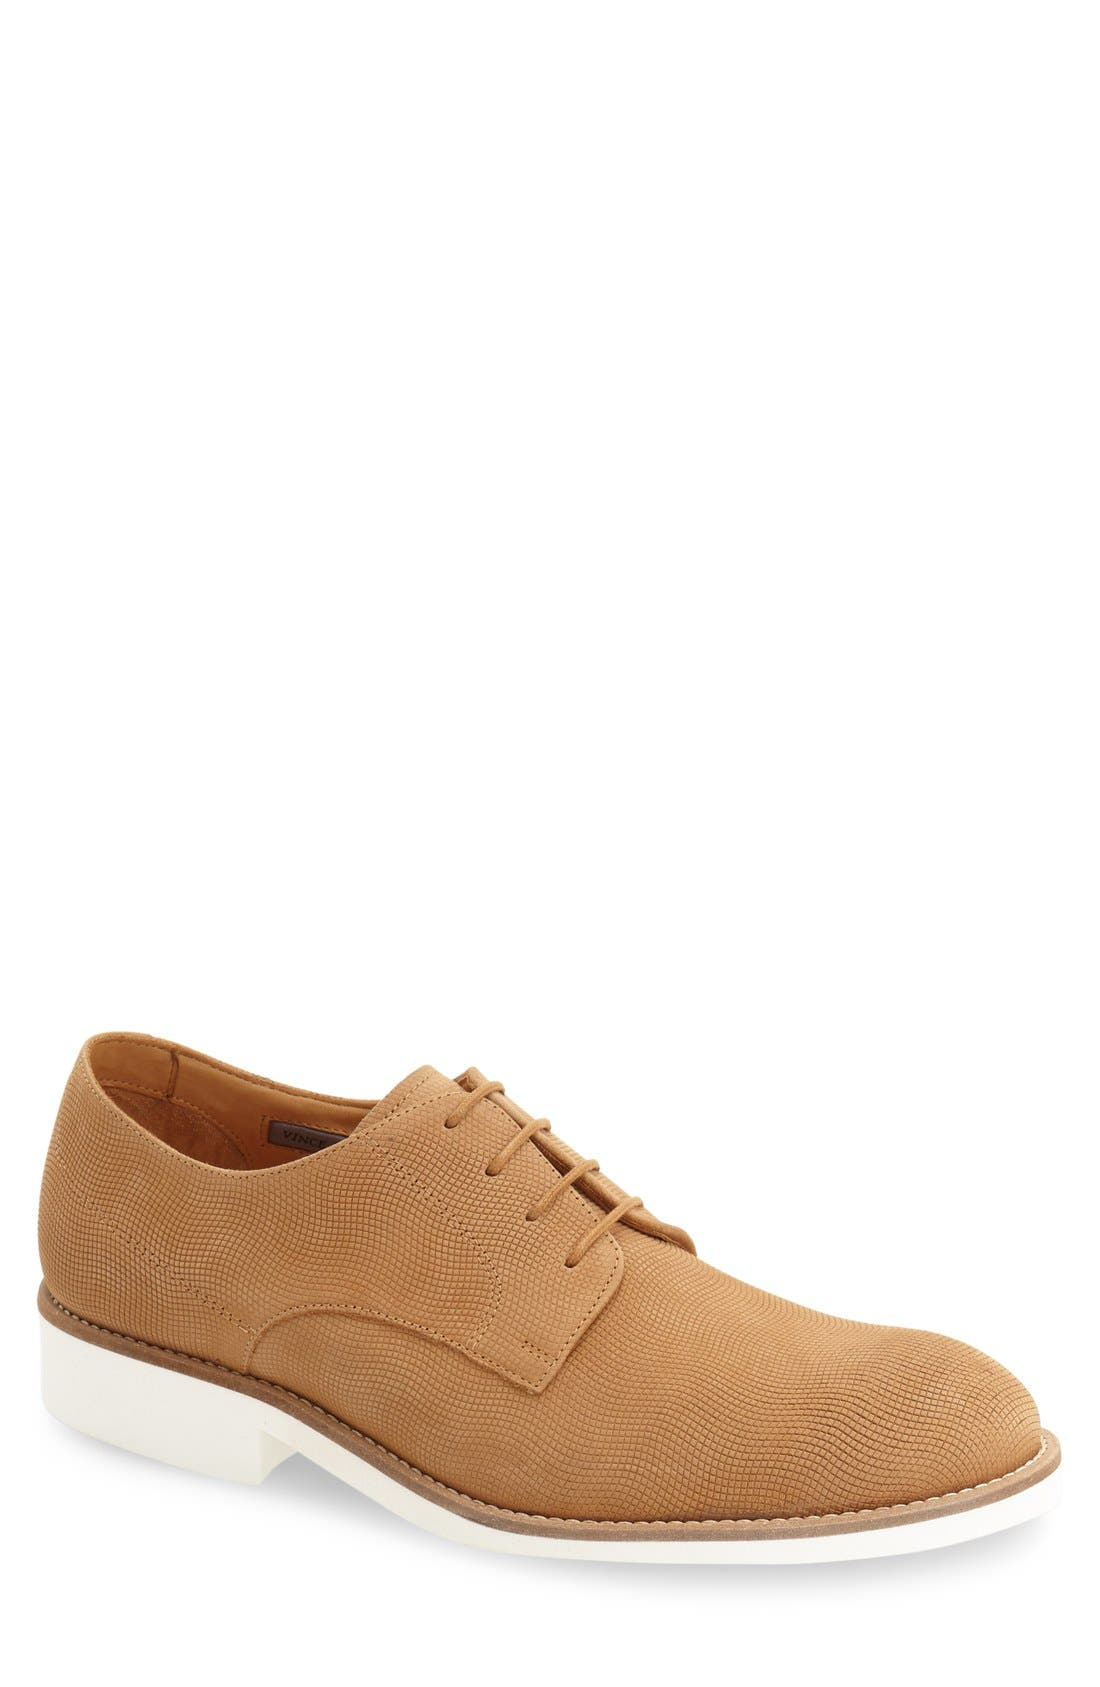 'Apexx' Nubuck Derby,                             Main thumbnail 1, color,                             200